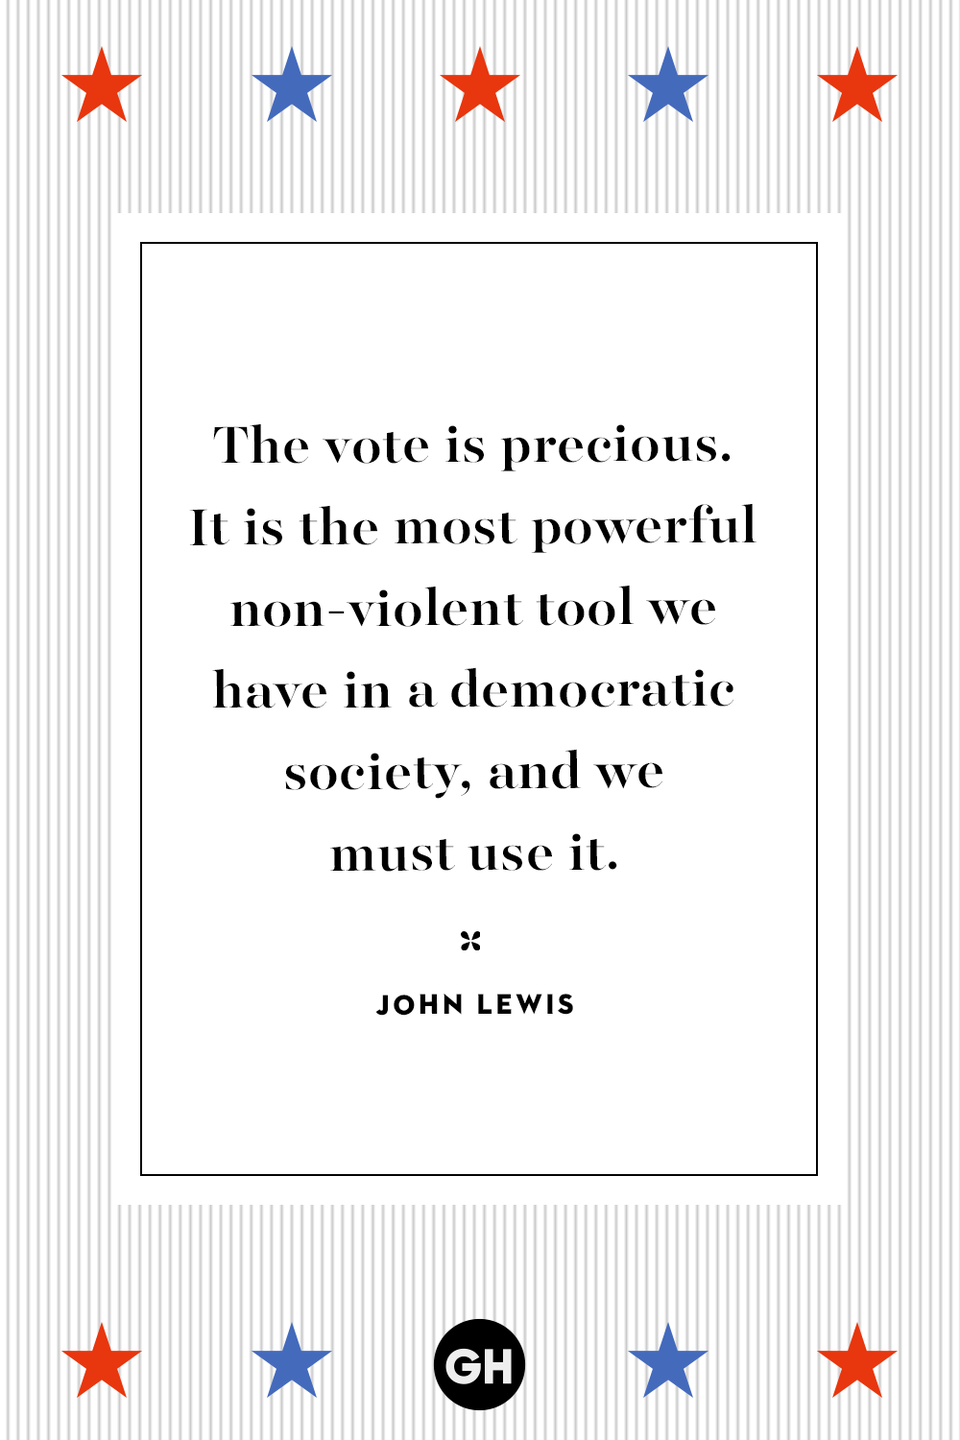 <p>The vote is precious. It is the most powerful non-violent tool we have in a democratic society, and we must use it.</p>